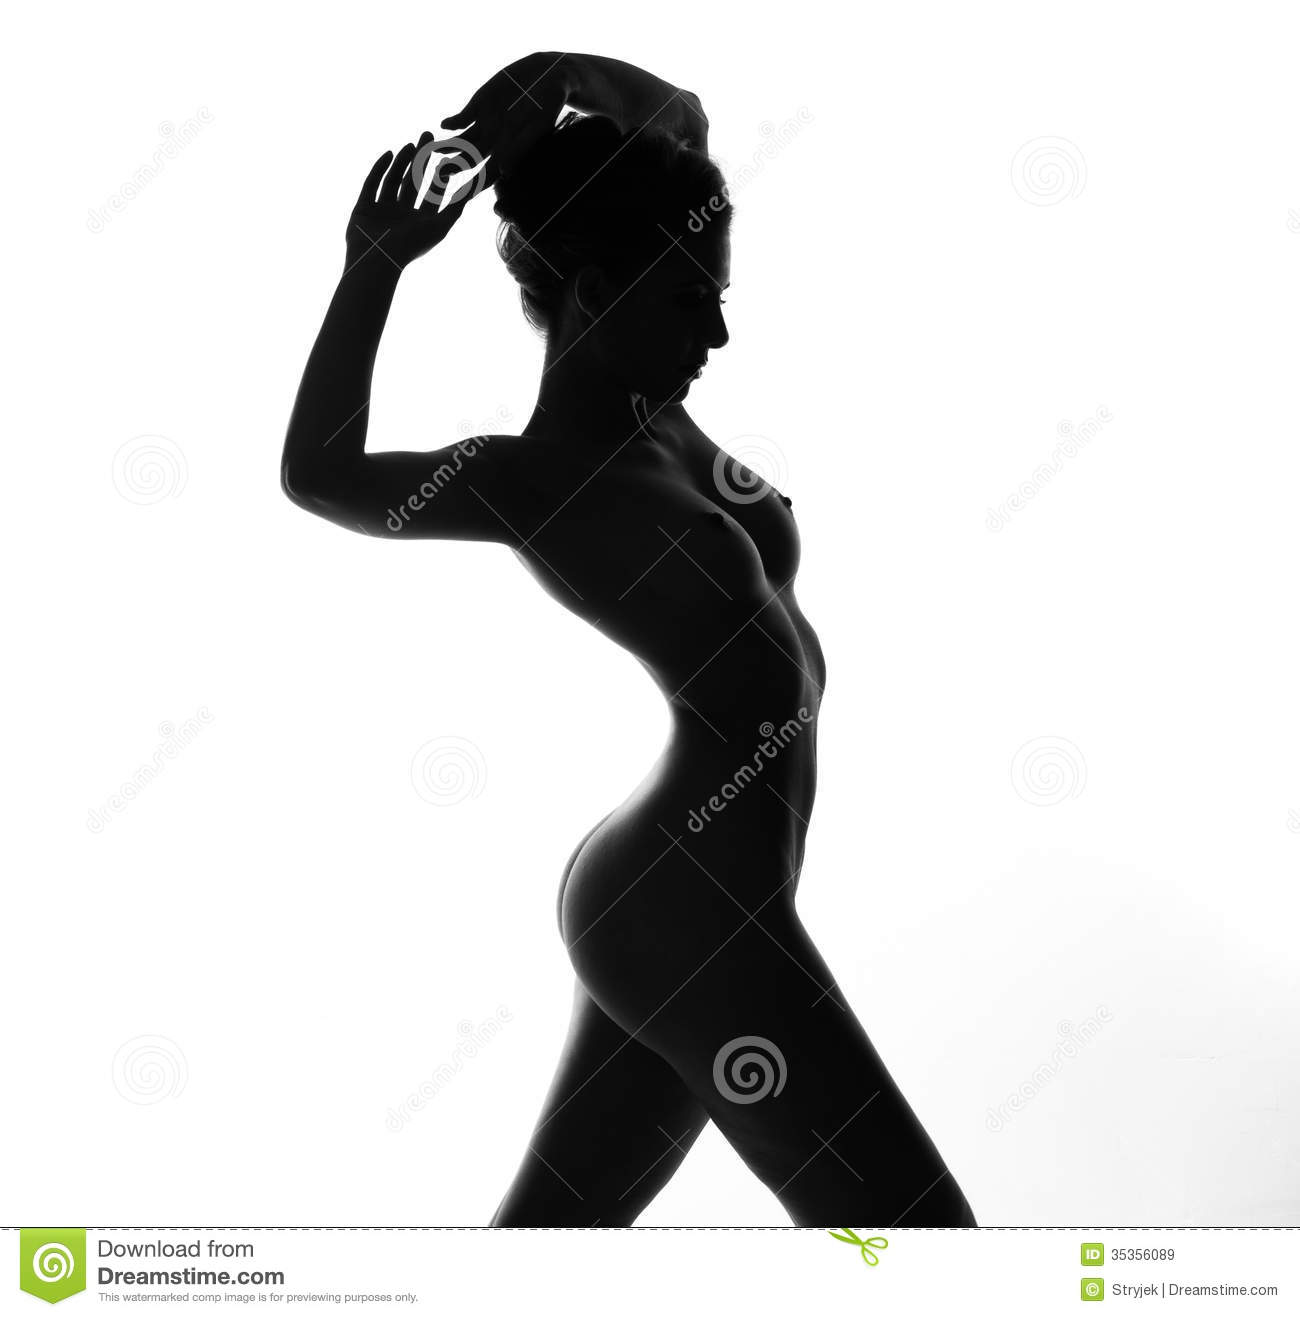 A naked woman-6393